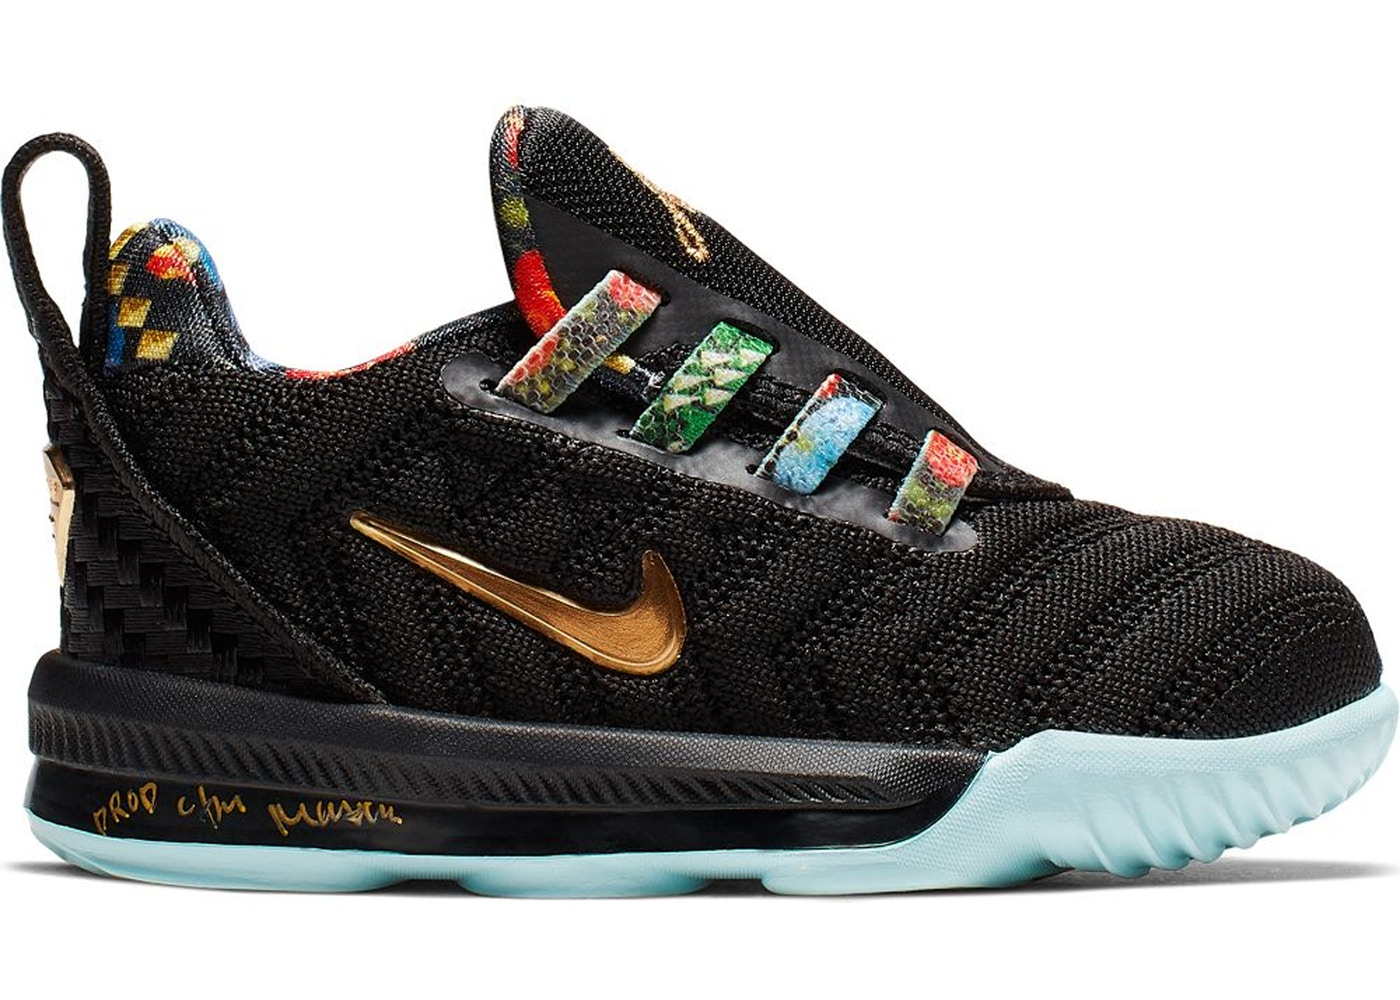 f8ede8cb0907 LeBron 16 Watch the Throne (TD) - CJ6708-001